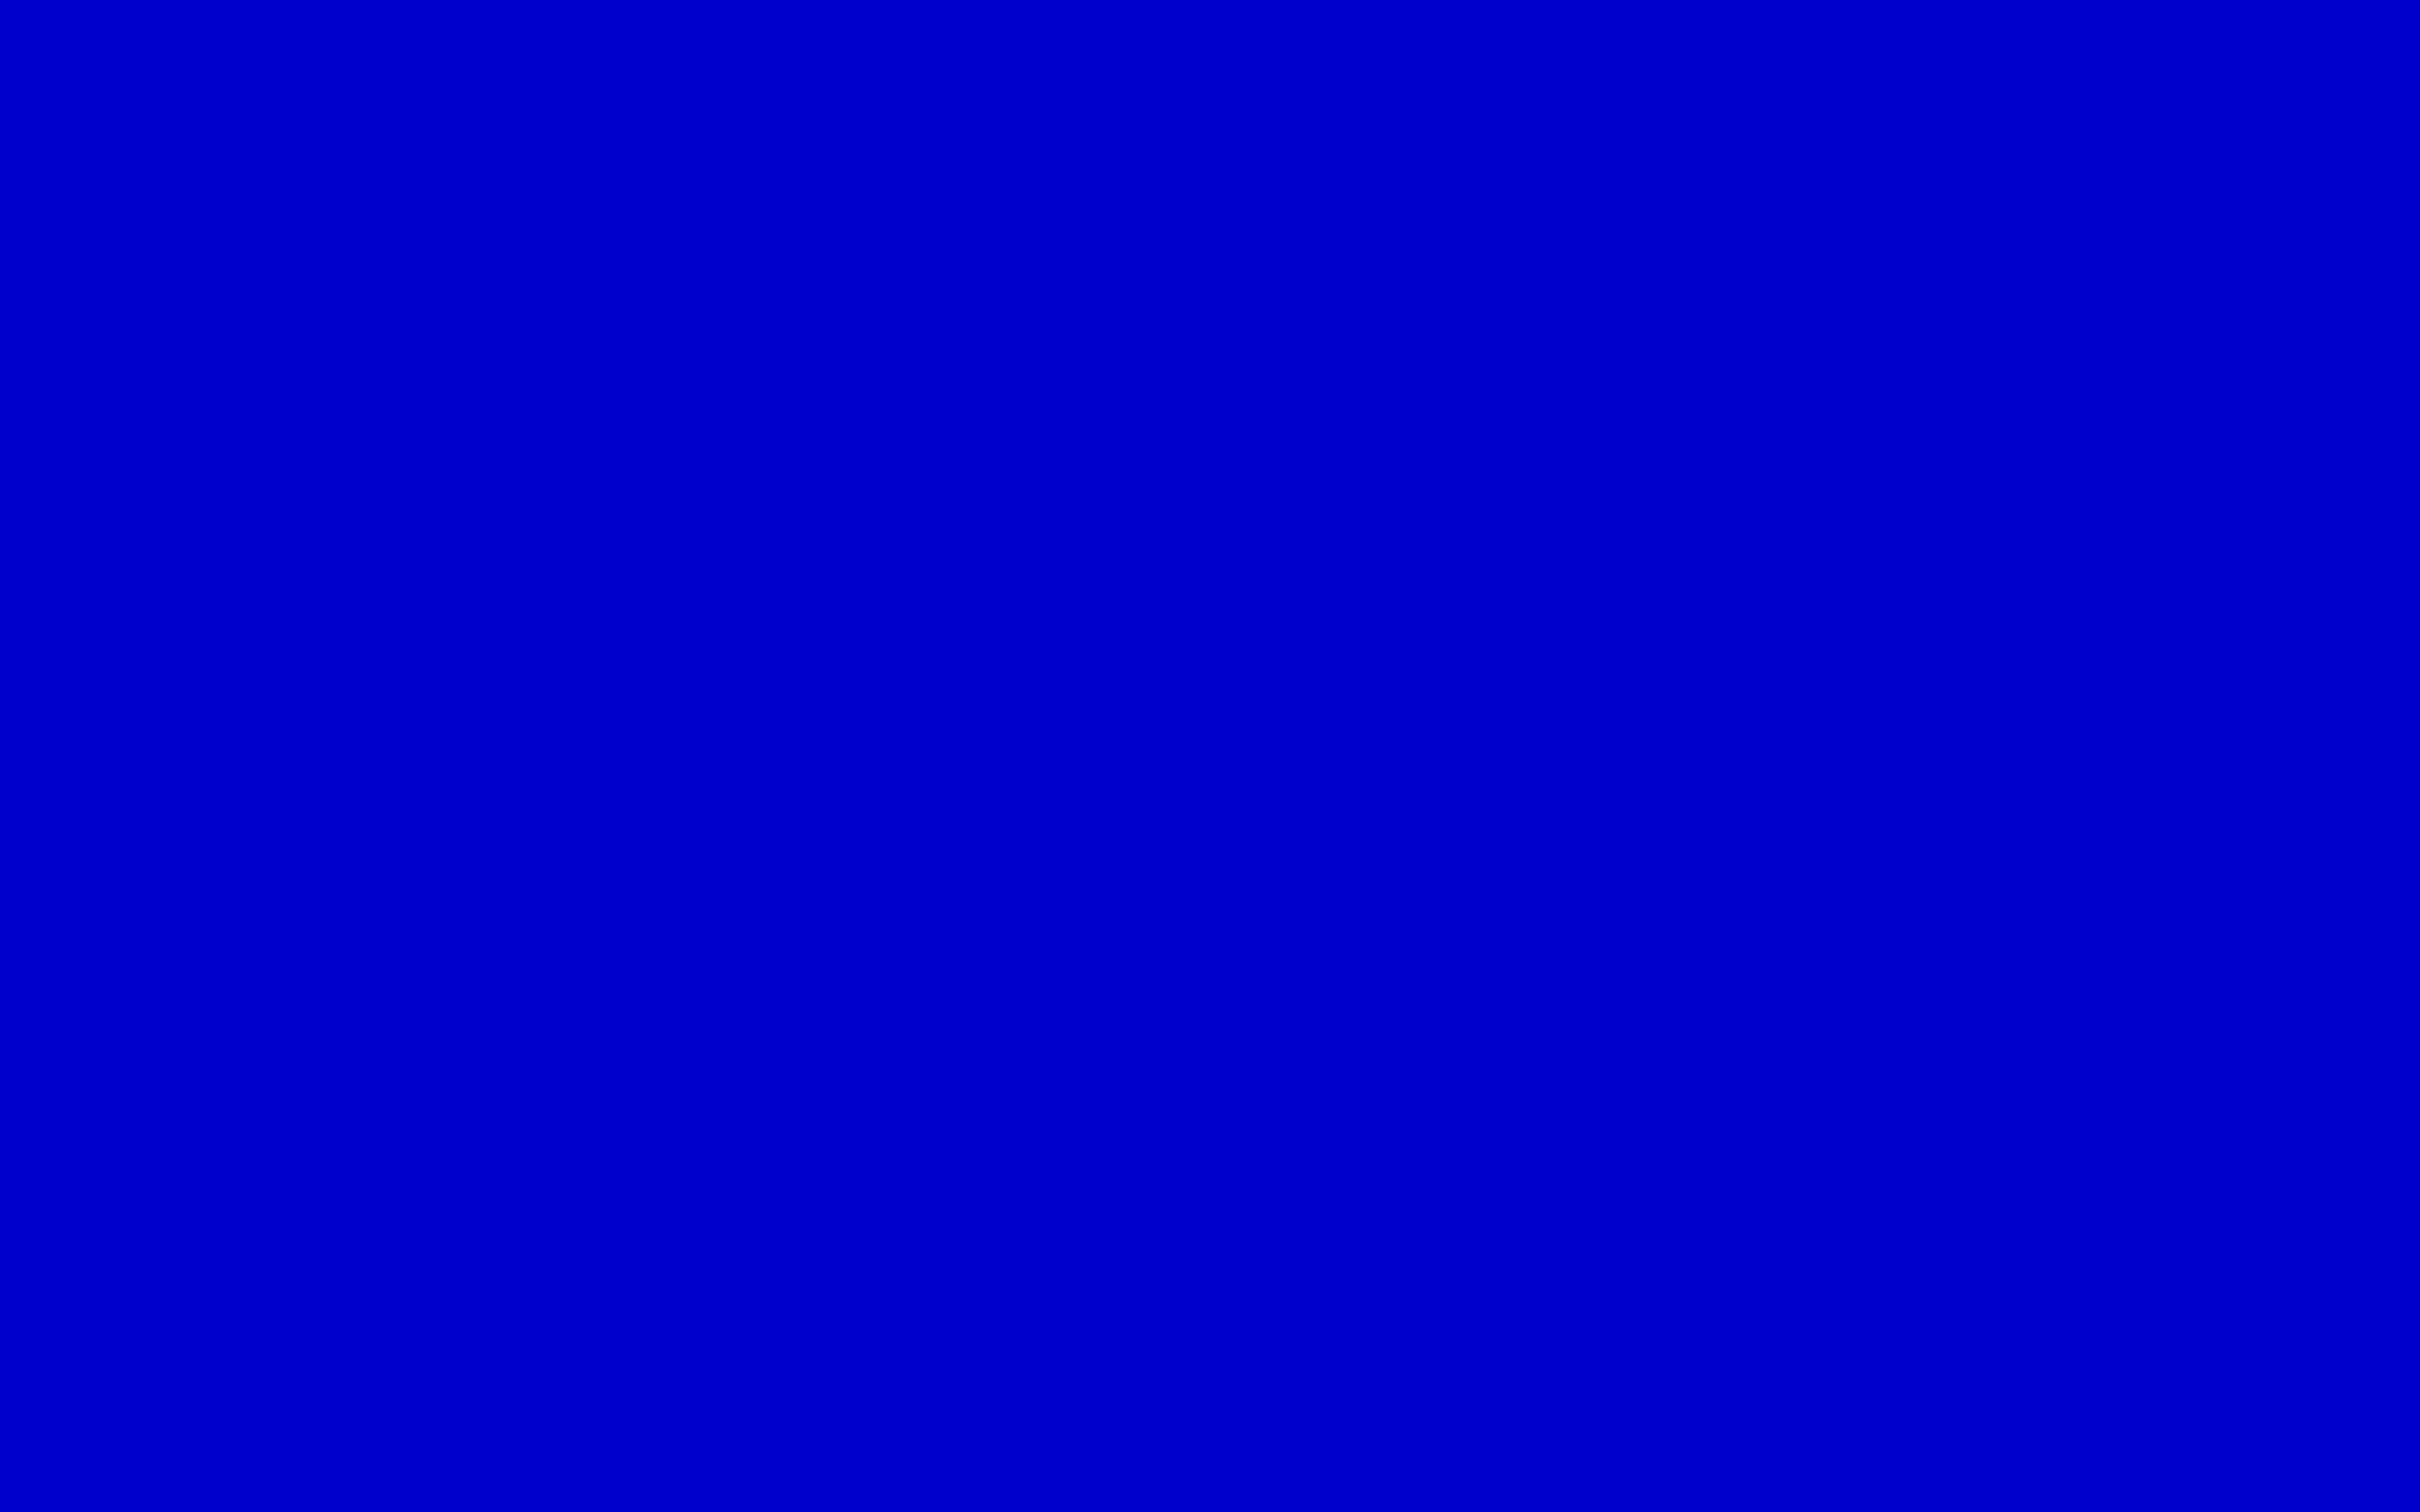 2880x1800 Medium Blue Solid Color Background